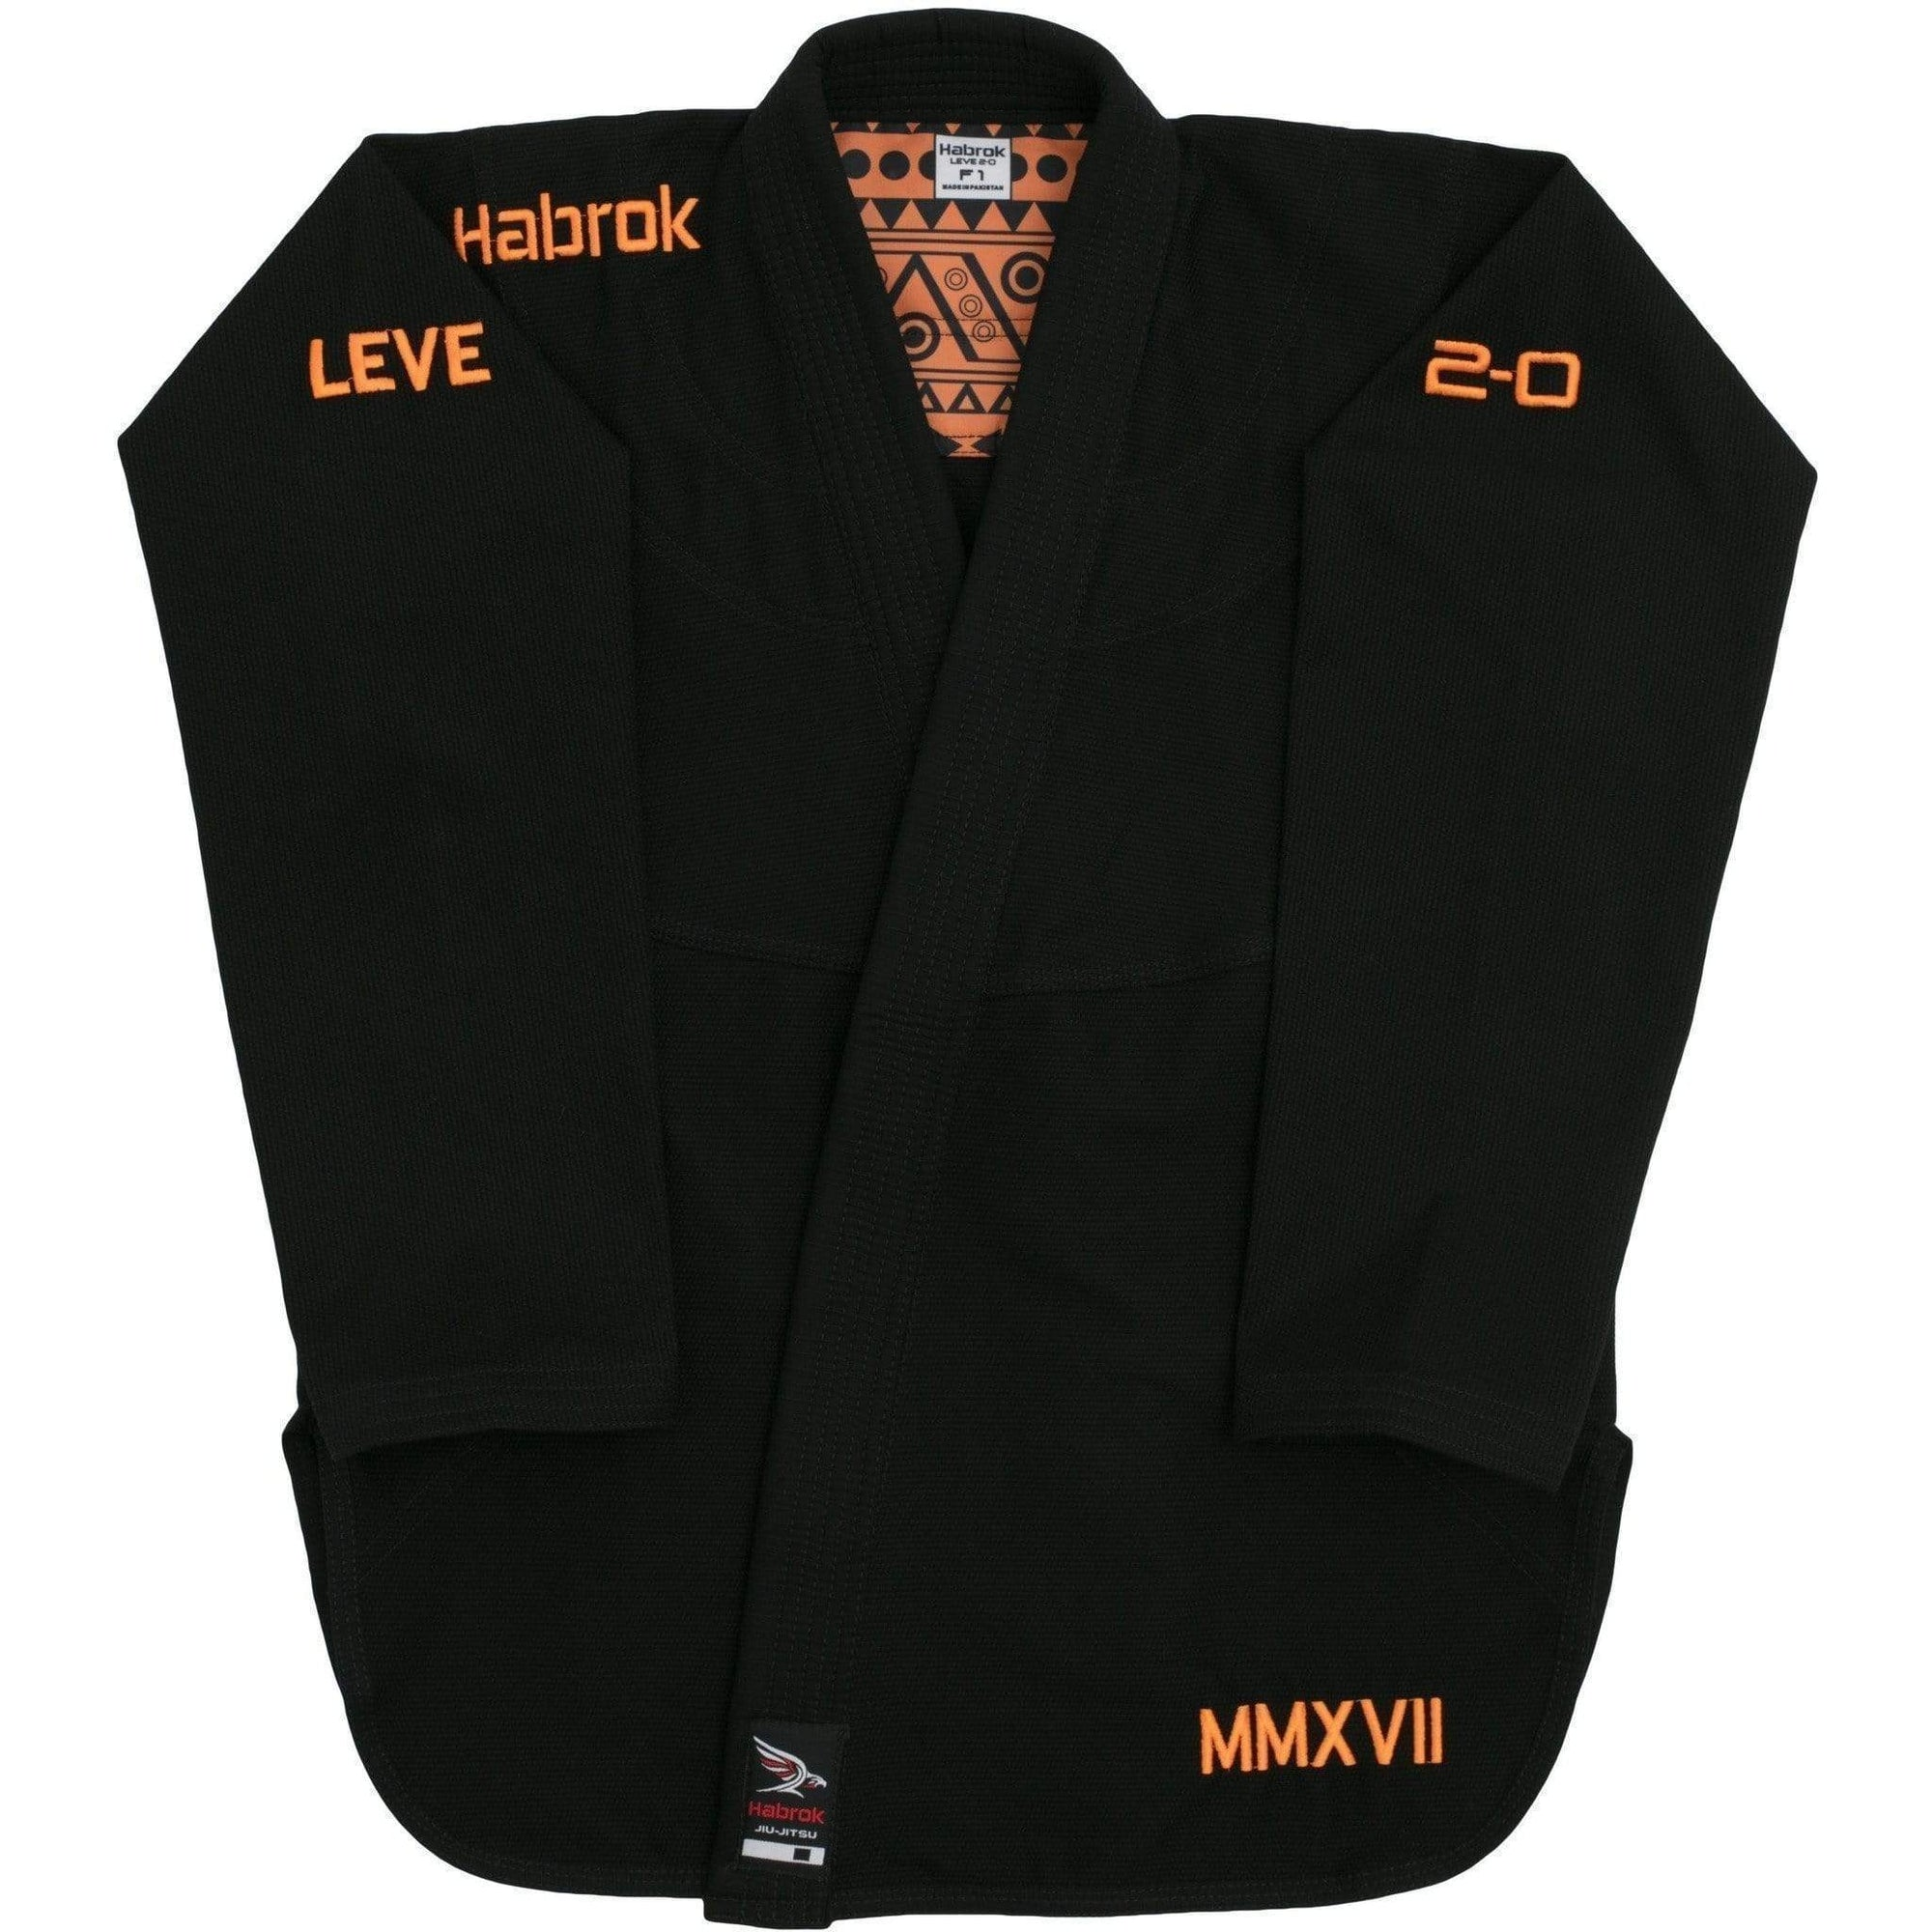 Habrok Jiu Jitsu Gi F0 / BLACK Leve 2.0 | Women | Premium Ultra Light Weight Gi 680334793474